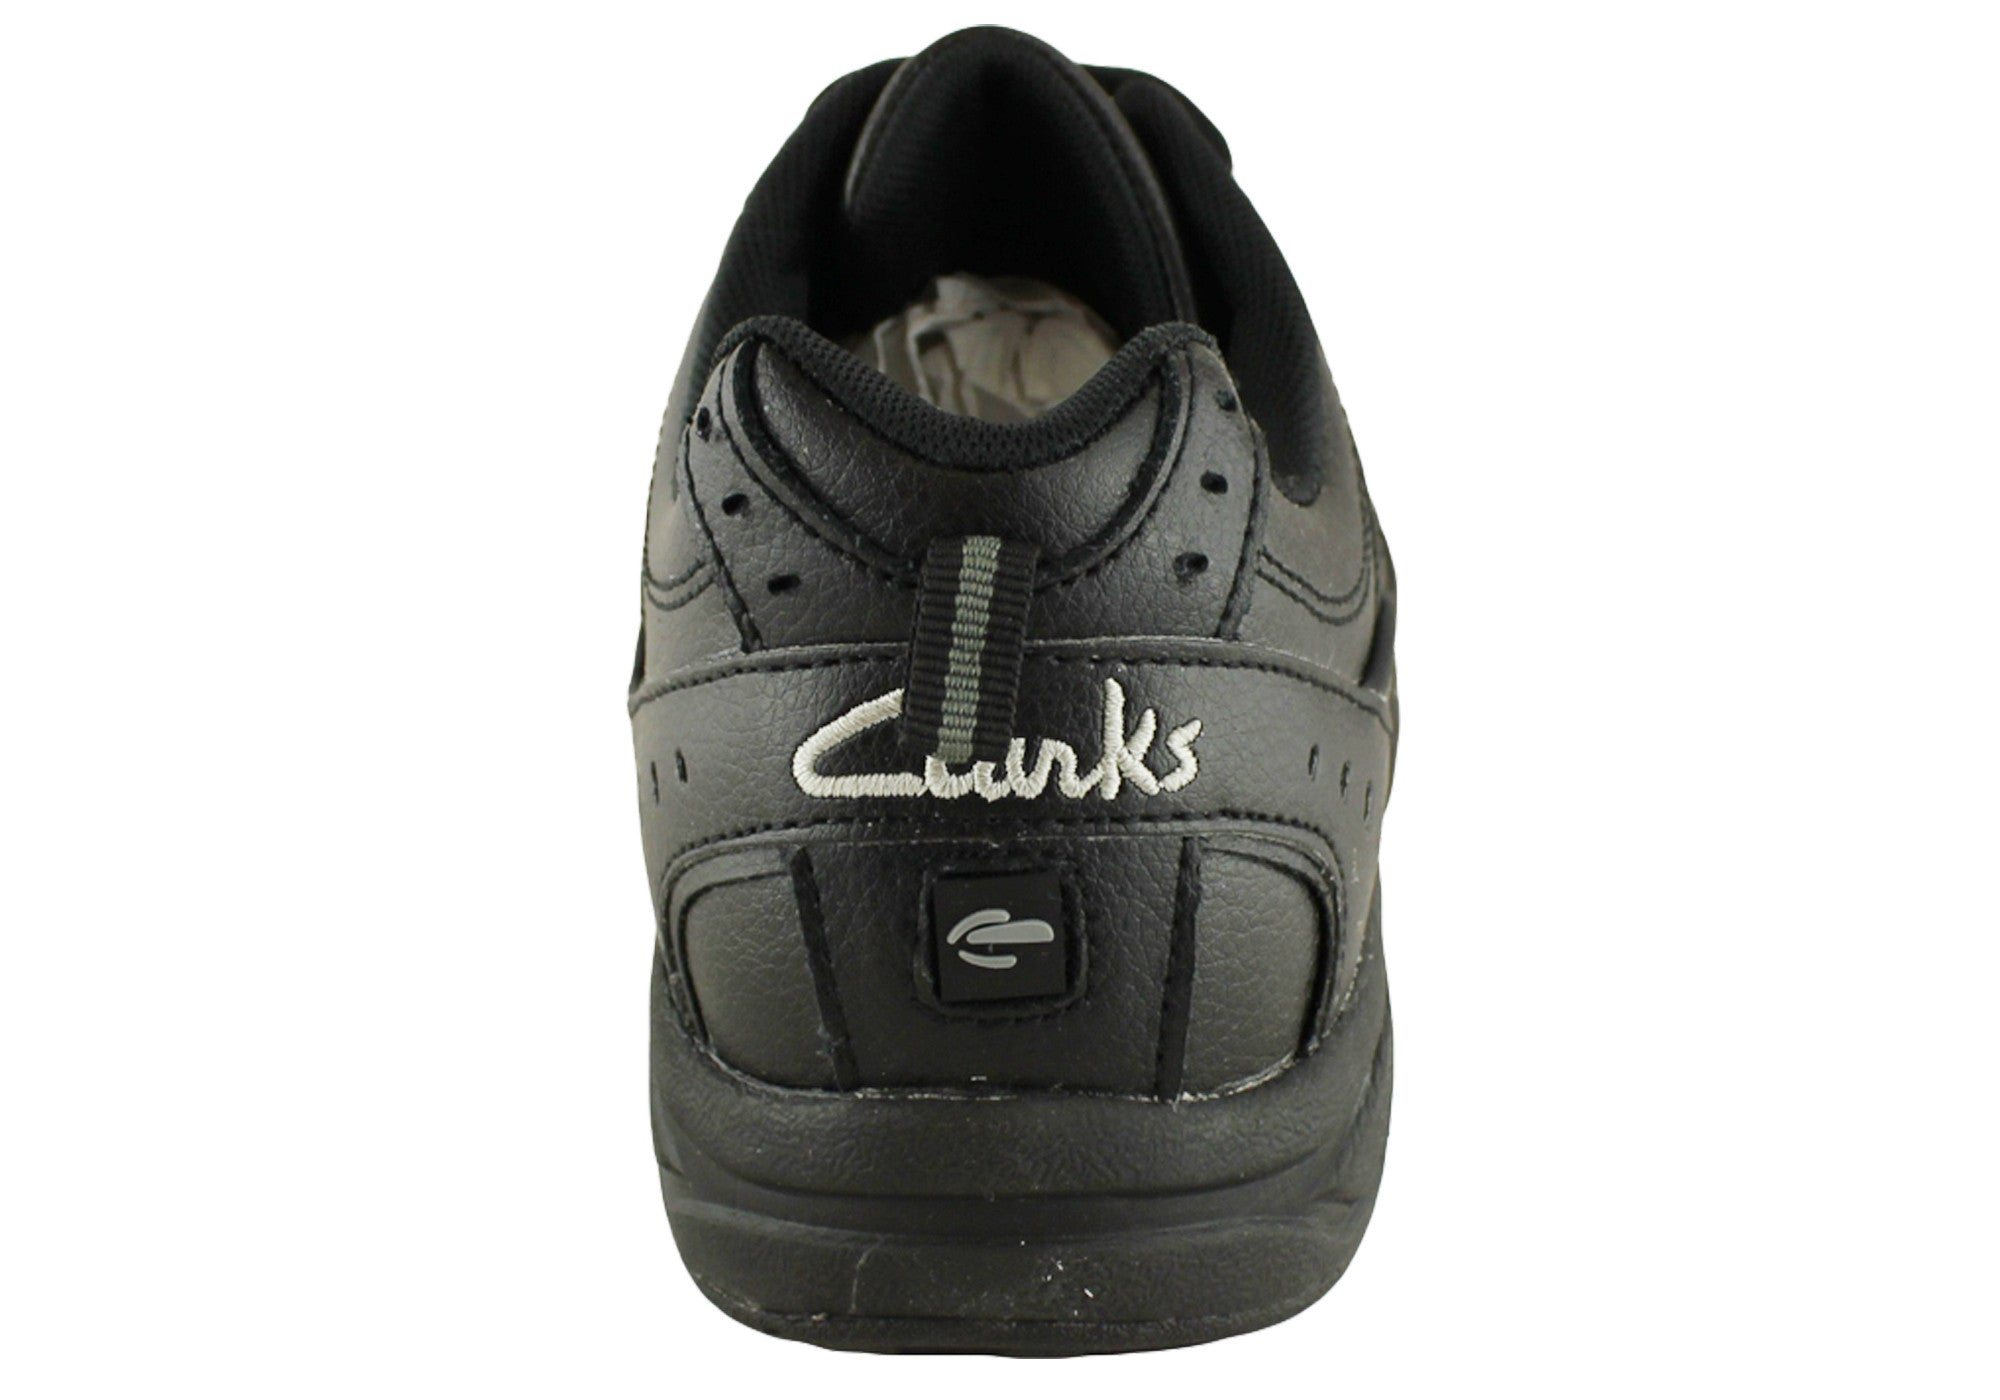 Clarks Vancouver Kids Lace Up Athletic Shoes